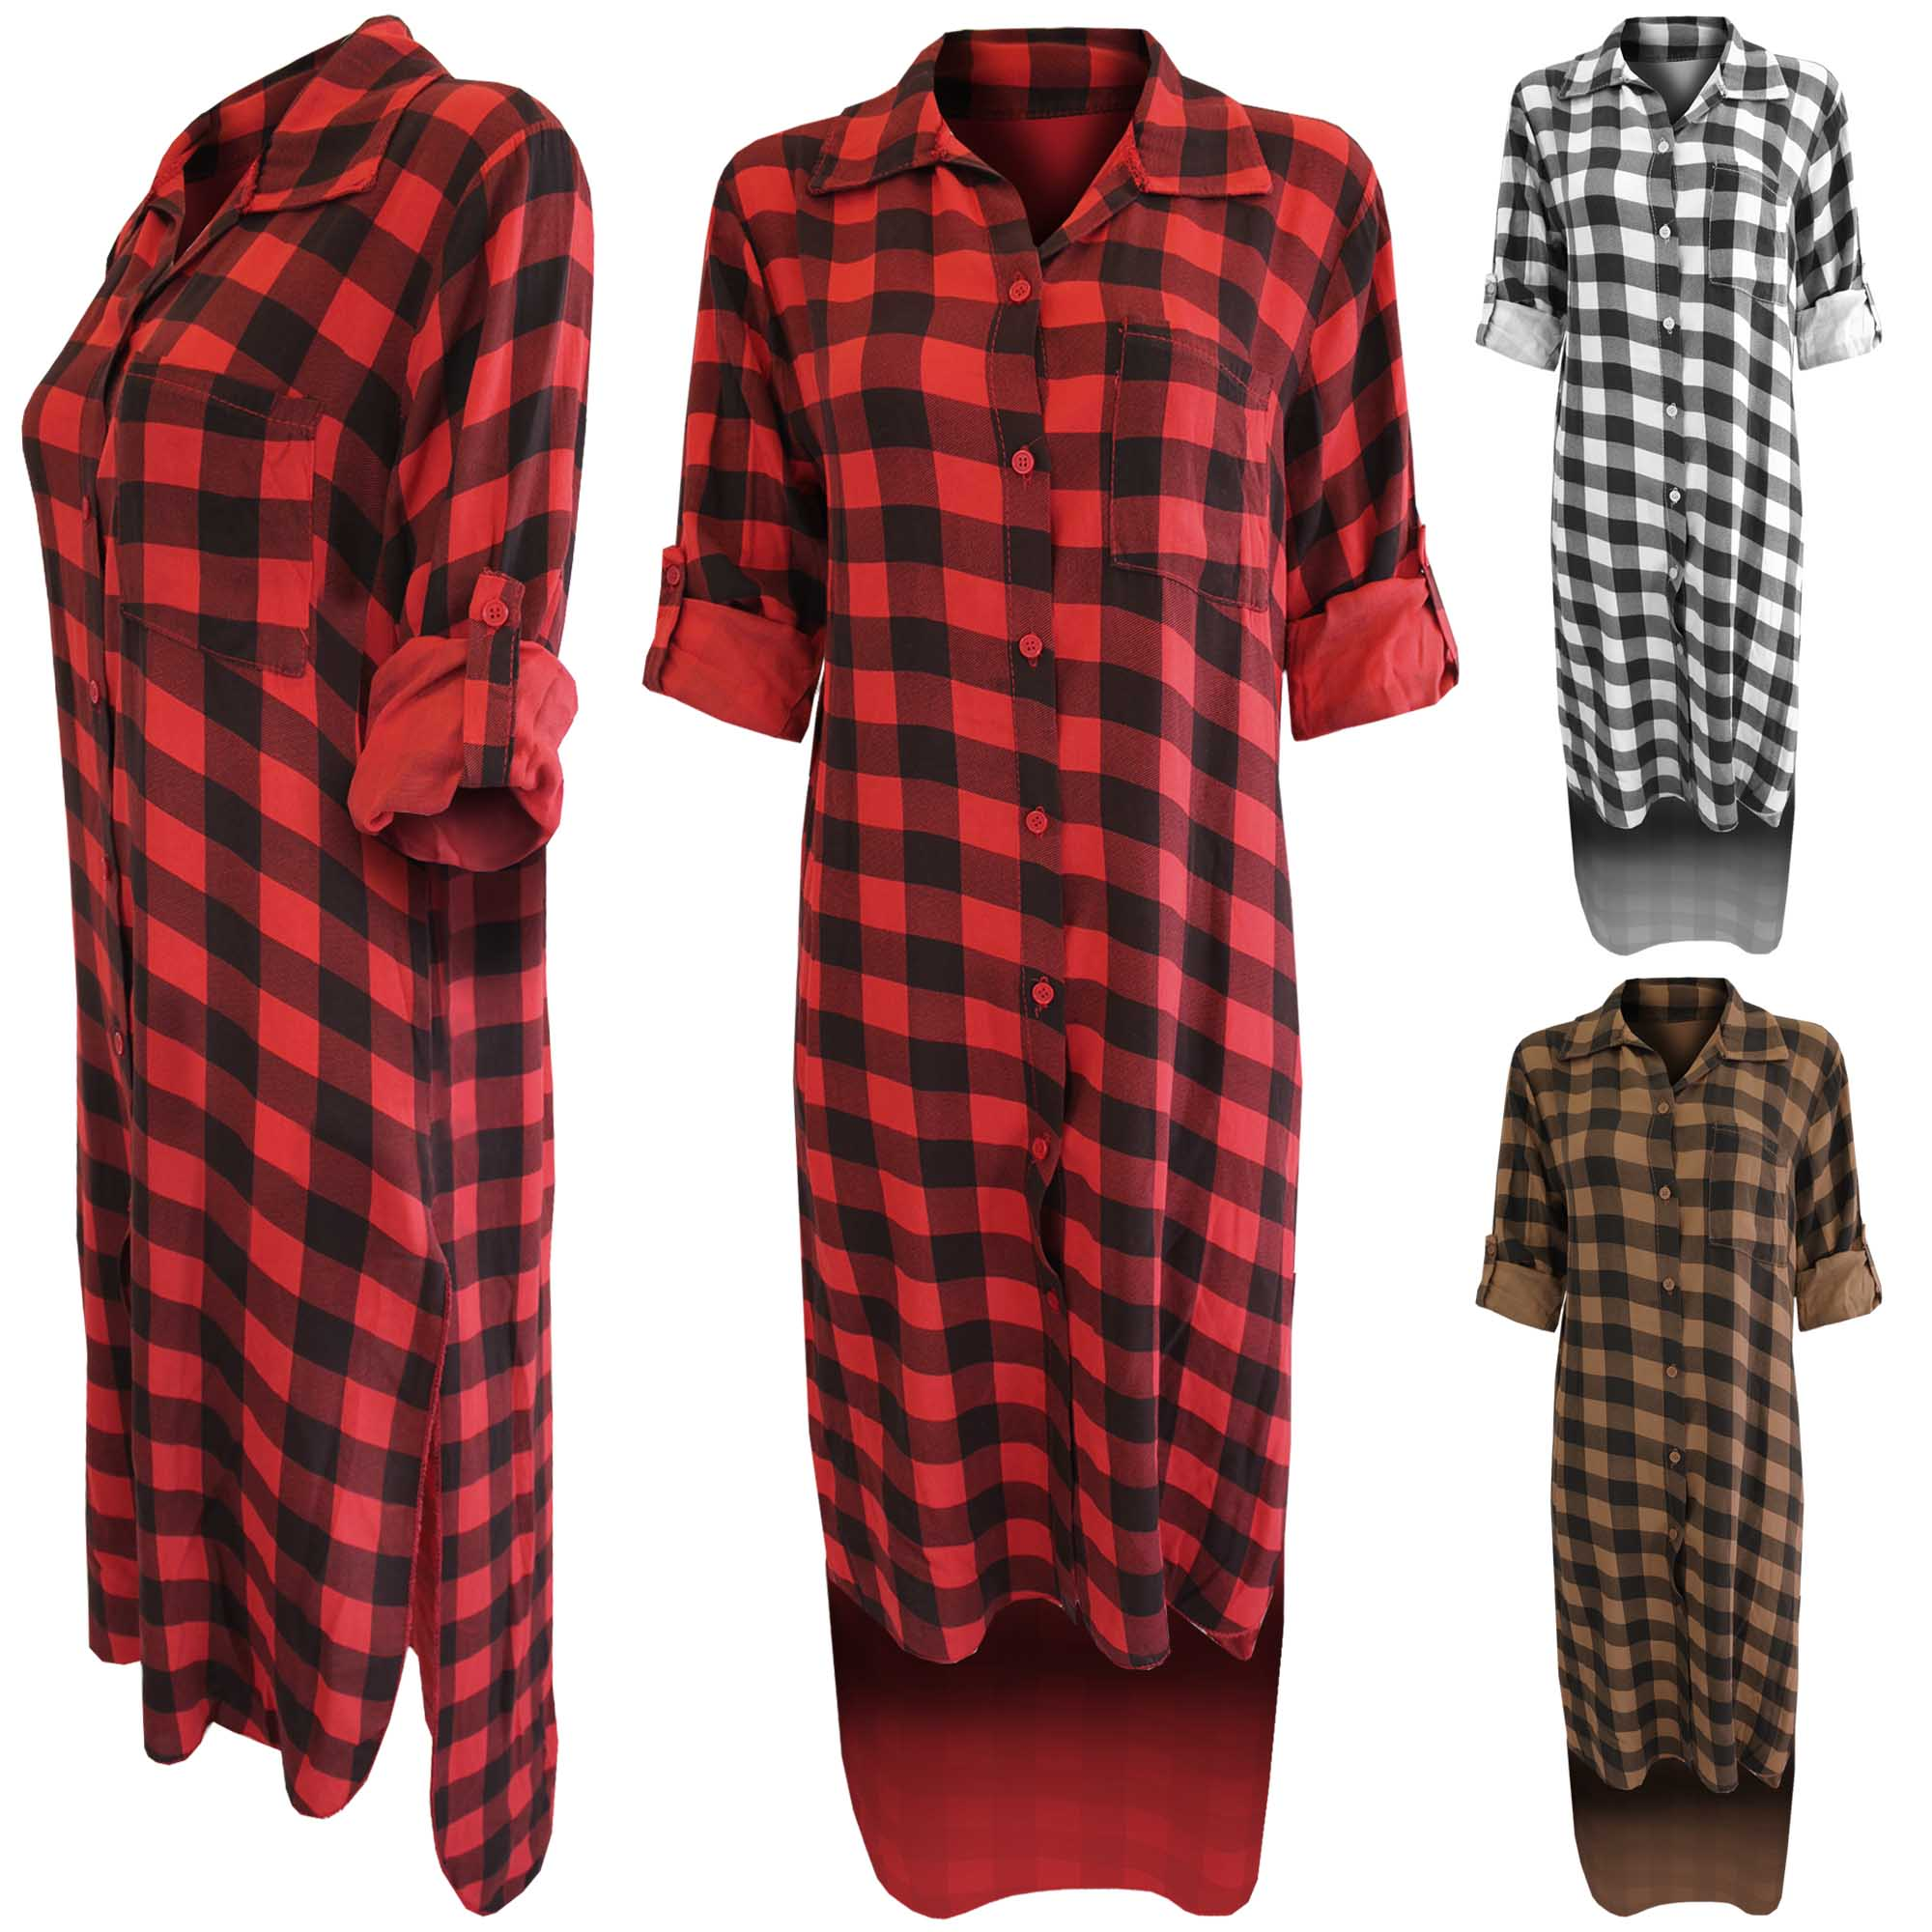 NEW LADIES HILO CHECK SHIRT DRESS WOMENS 3/4 SLEEVE BUTTONED DIP ...